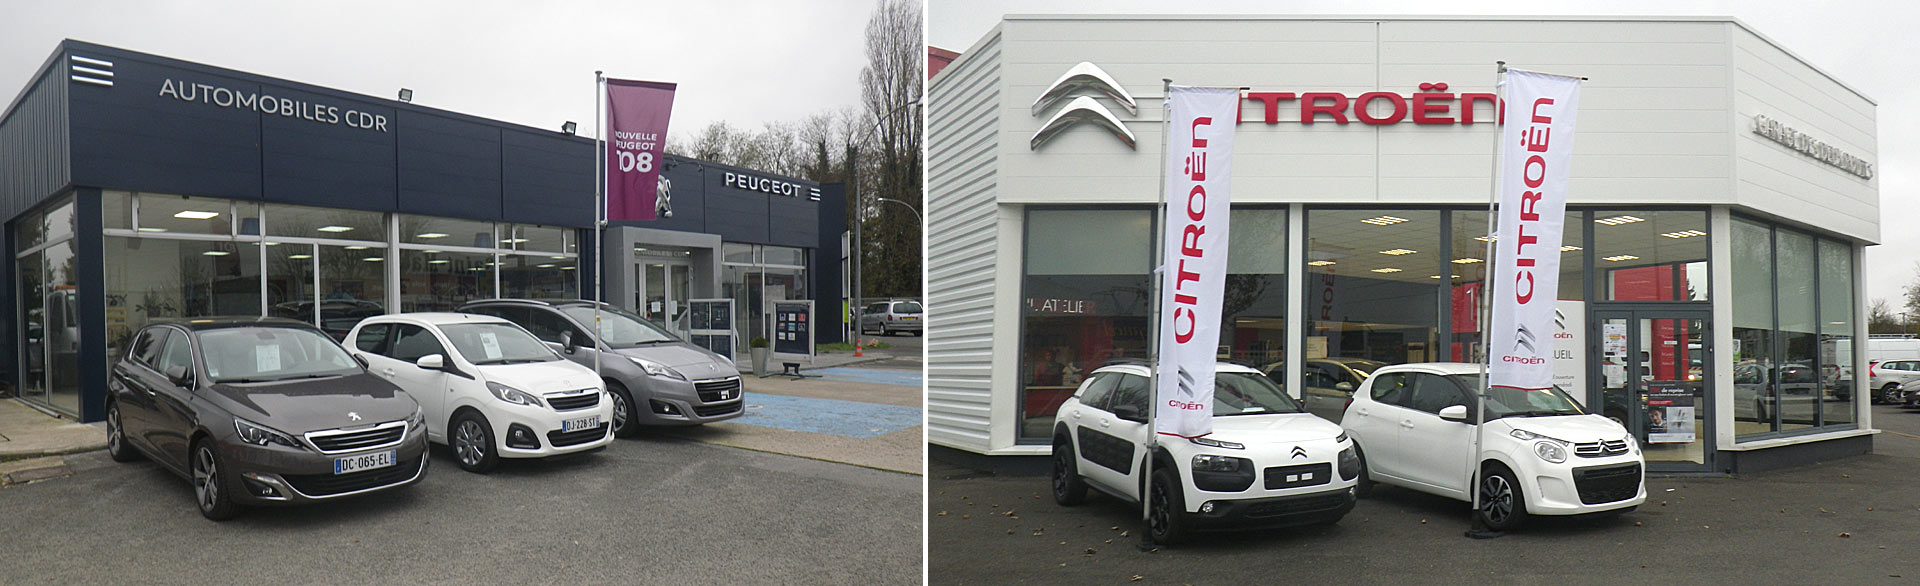 showroom peugeot citroen 43